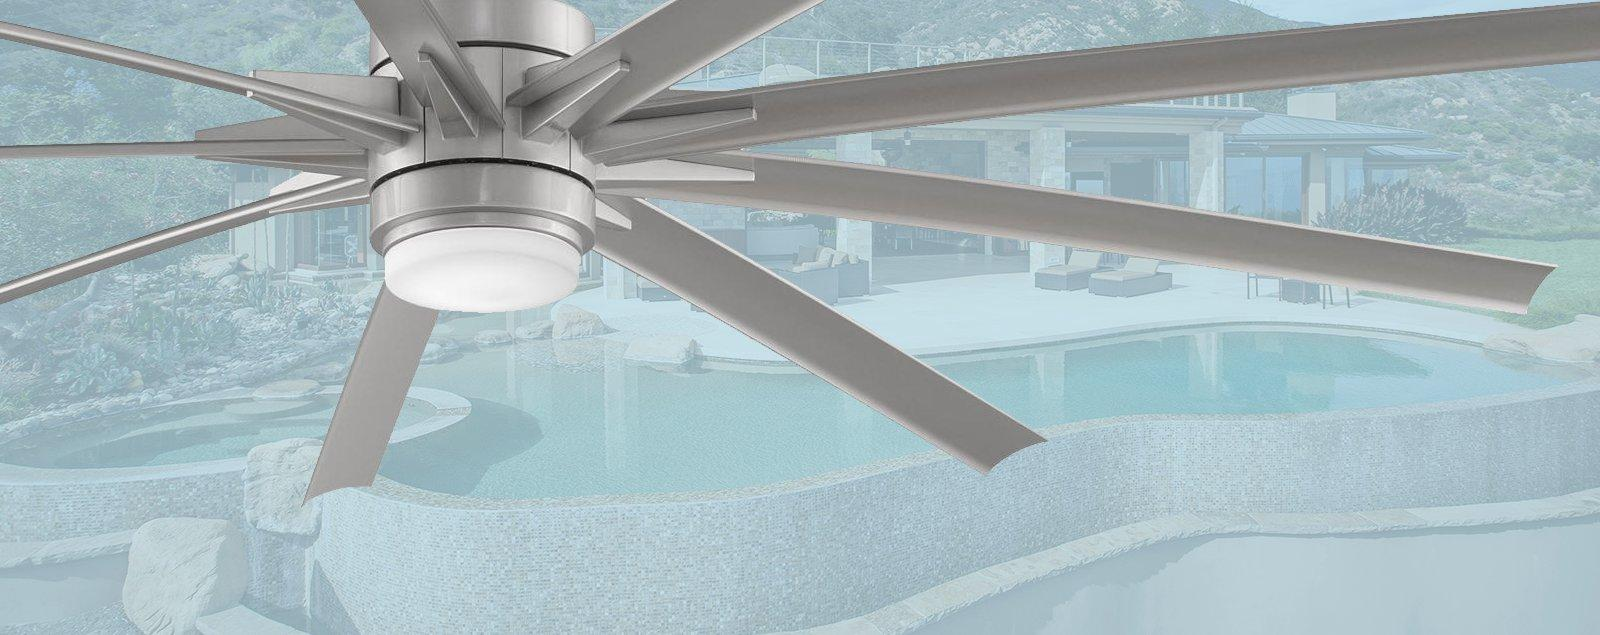 Large Outdoor Fans